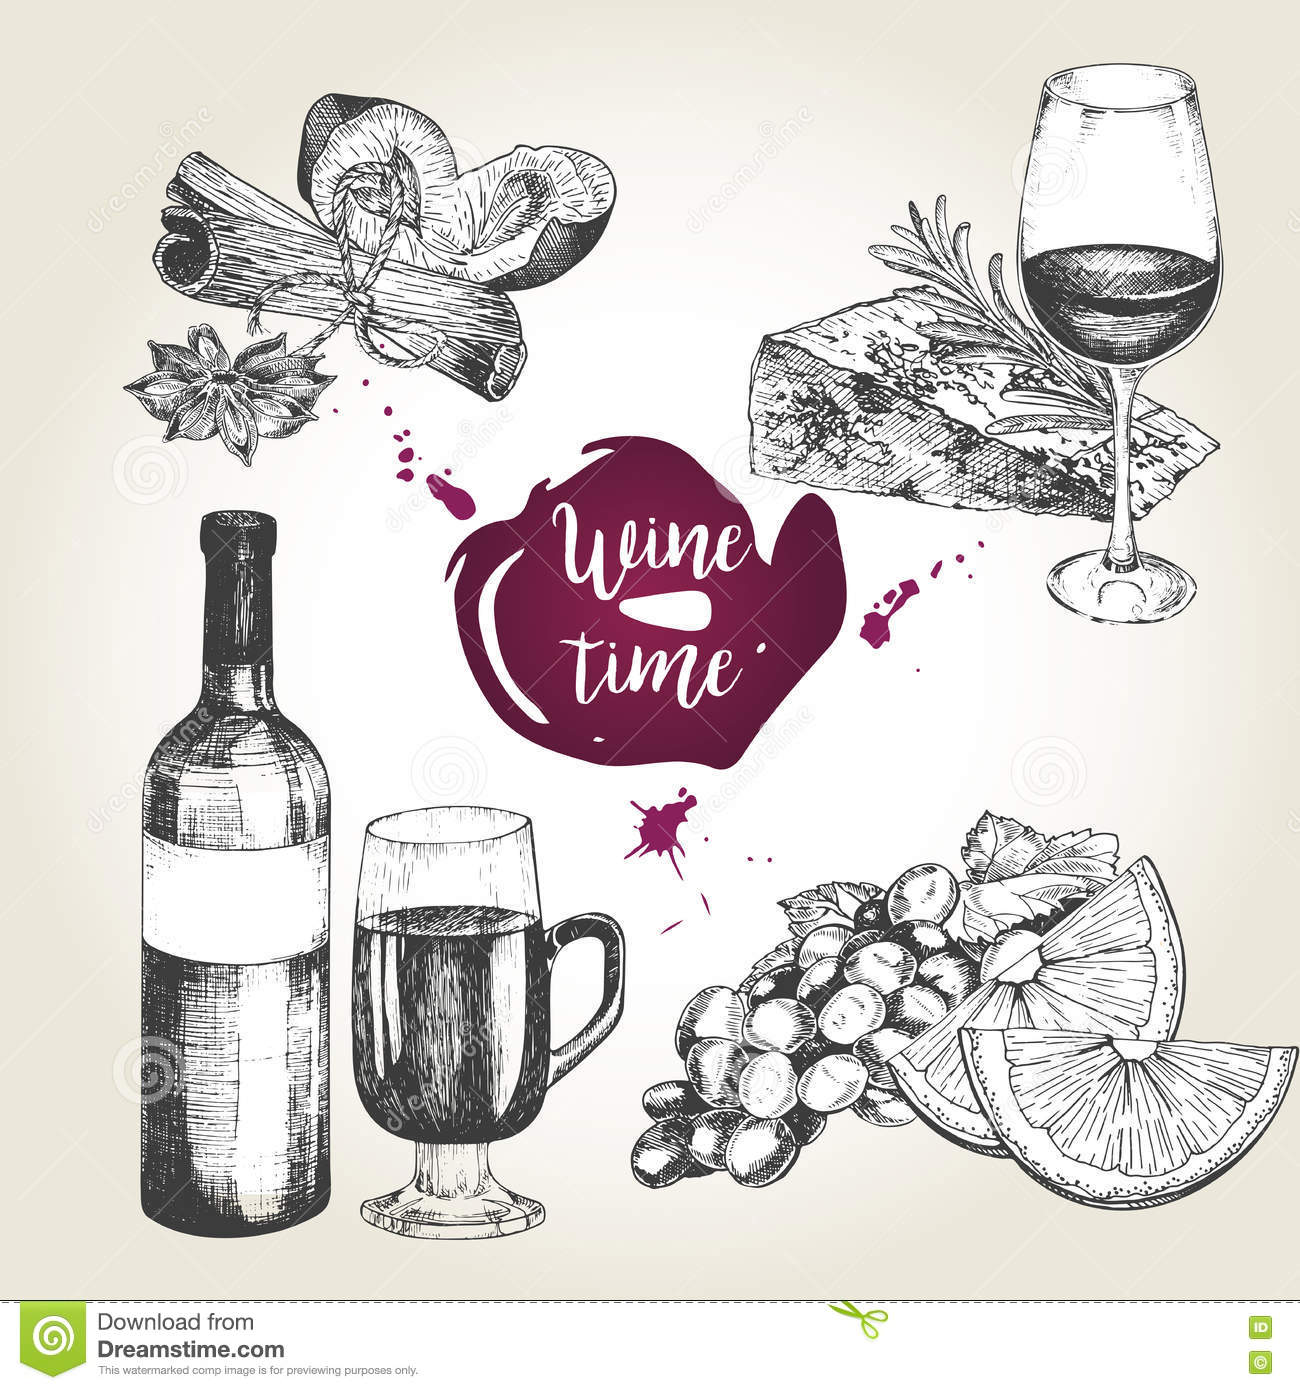 vector set wine appetizers bottle glass cheese rosemary orange grape cinnamon sticks anise plum vintage engraved style use 77971654 Scooter Coffee Cartoon Italian Culture Symbols Pisa Tower Retro Scooter Red Wine Coffee Pizza Pasta